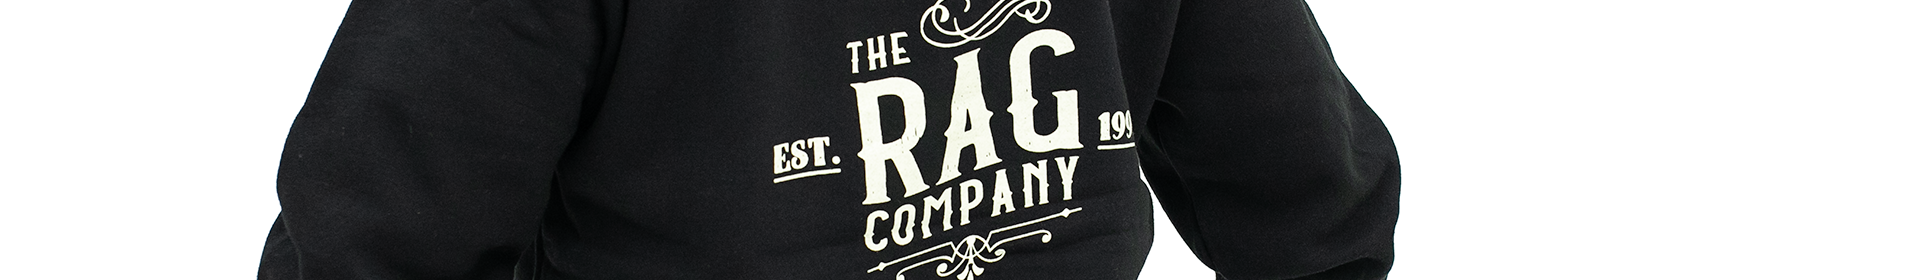 category-marketing-banner-swag-and-gear.png